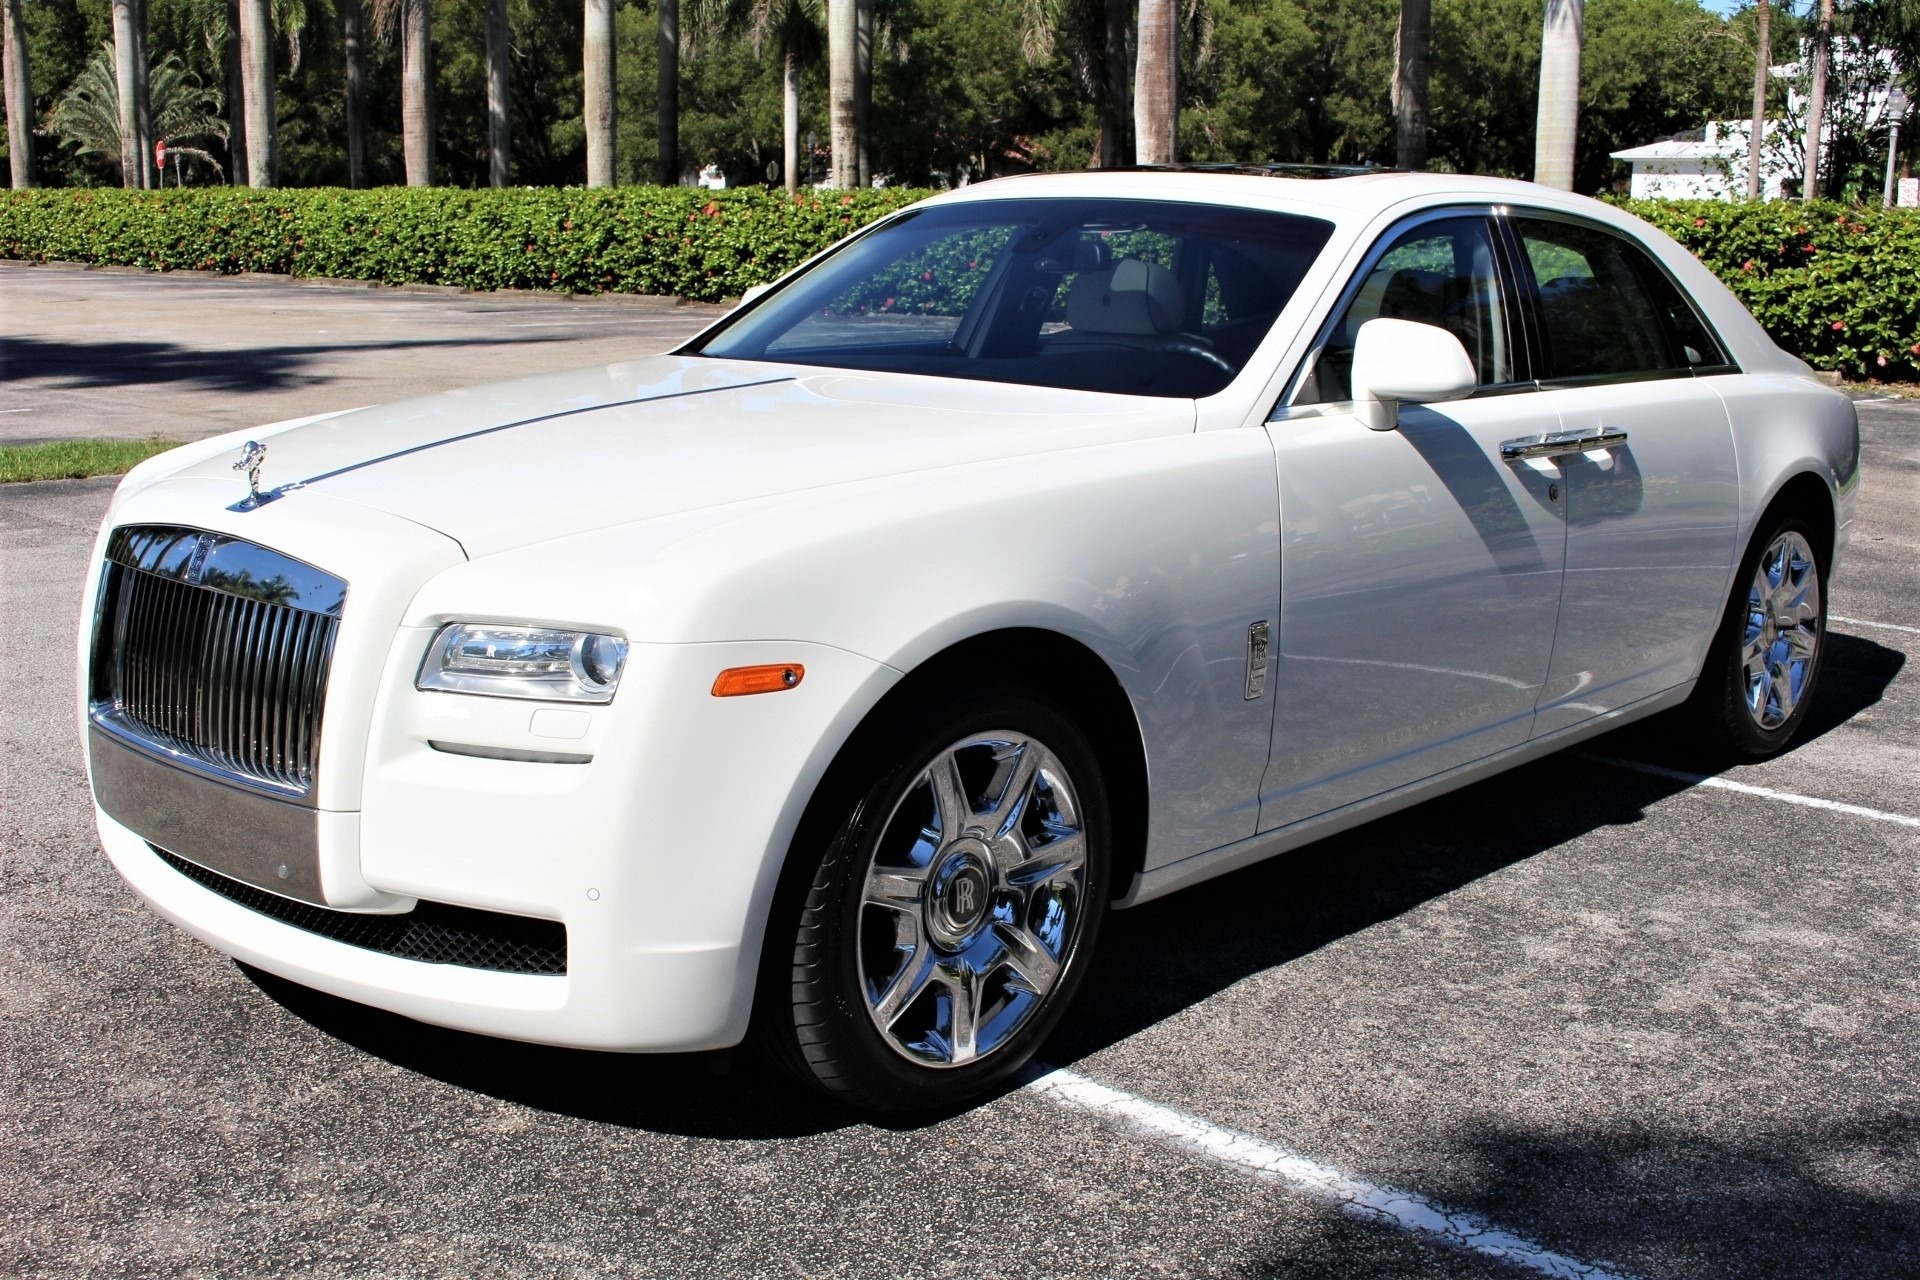 Used 2012 Rolls-Royce Ghost for sale $119,850 at The Gables Sports Cars in Miami FL 33146 4